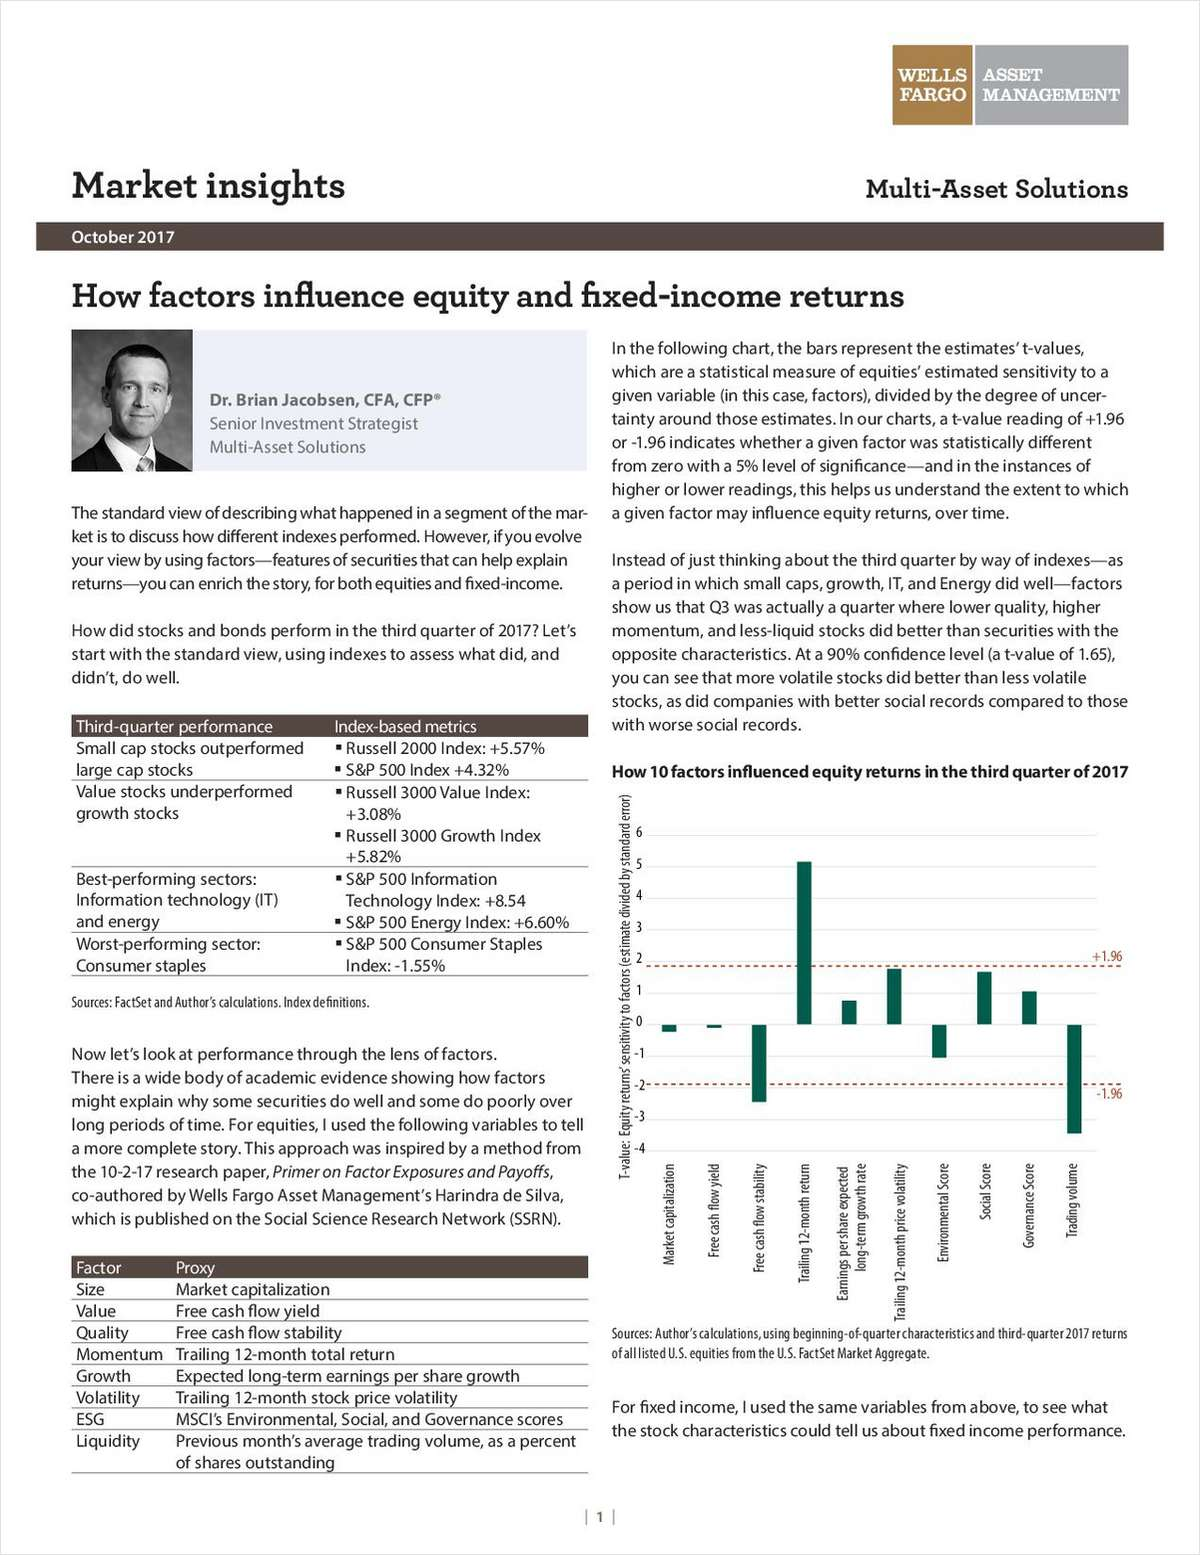 How Factors Influence Equity and Fixed-Income Returns